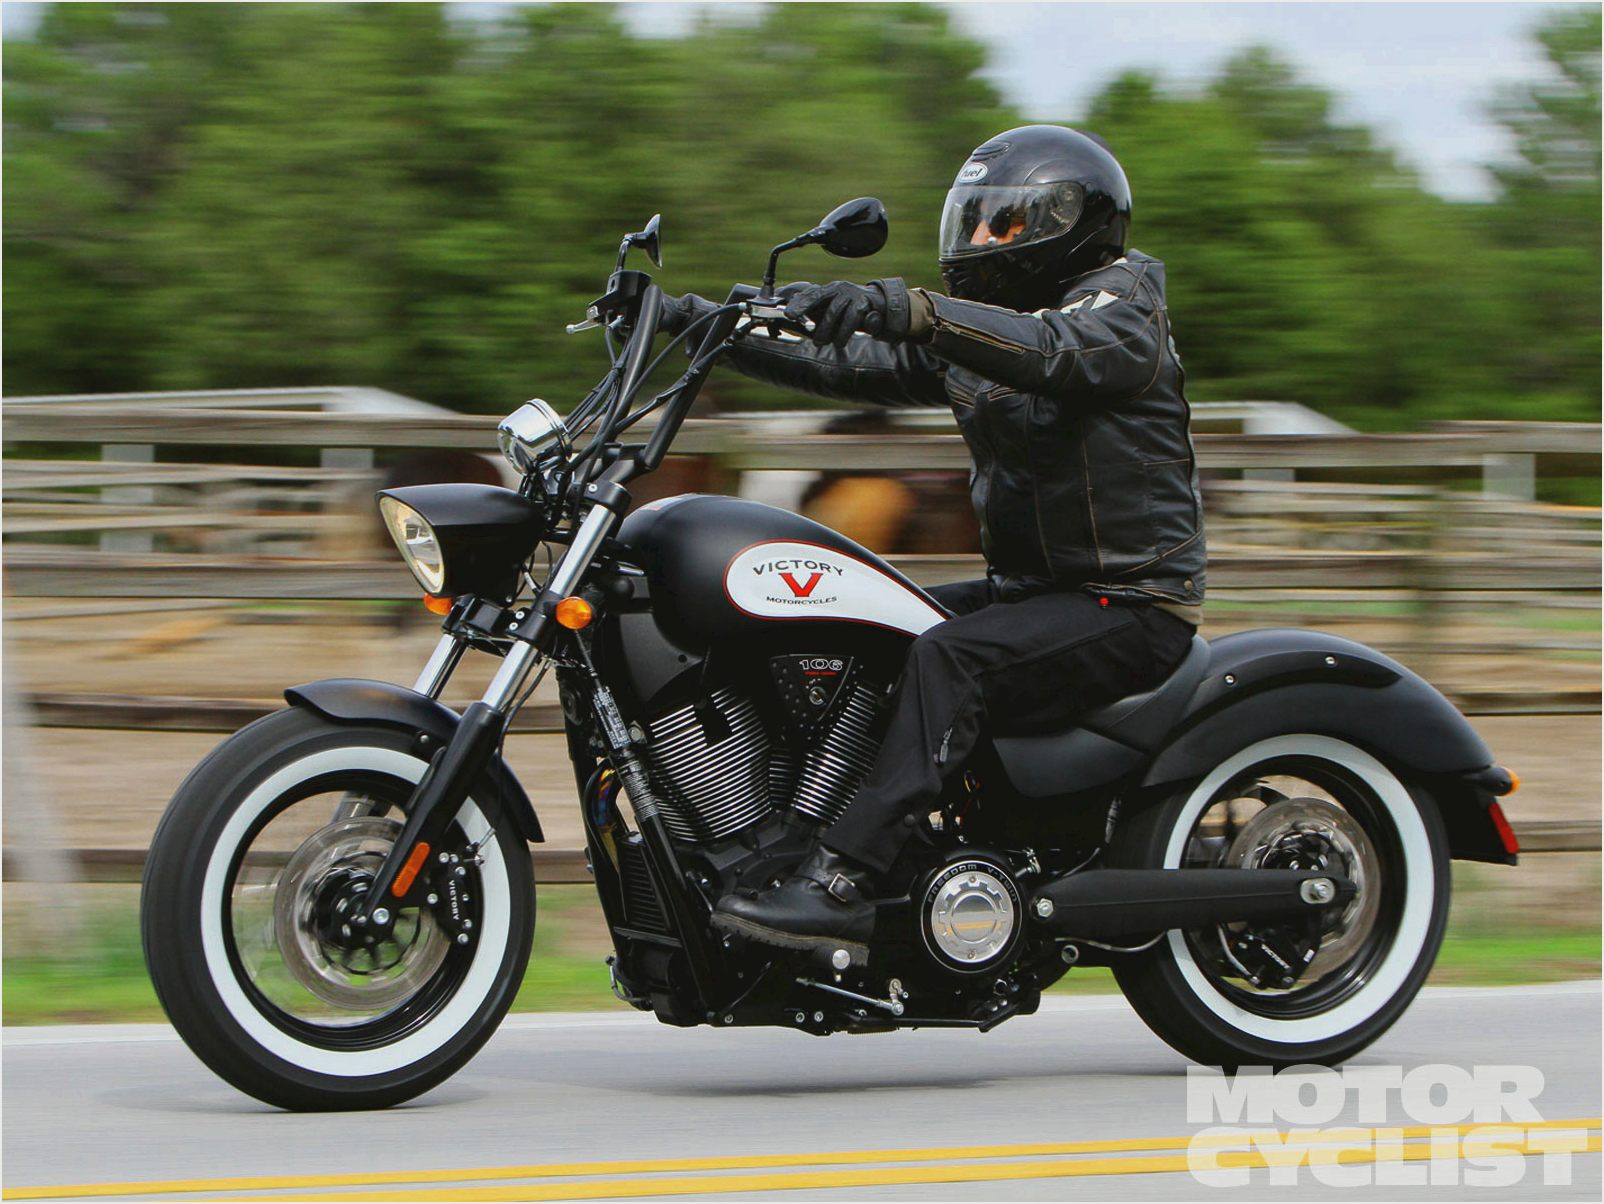 Victory Cruiser Deluxe 1500 2000 images #129432